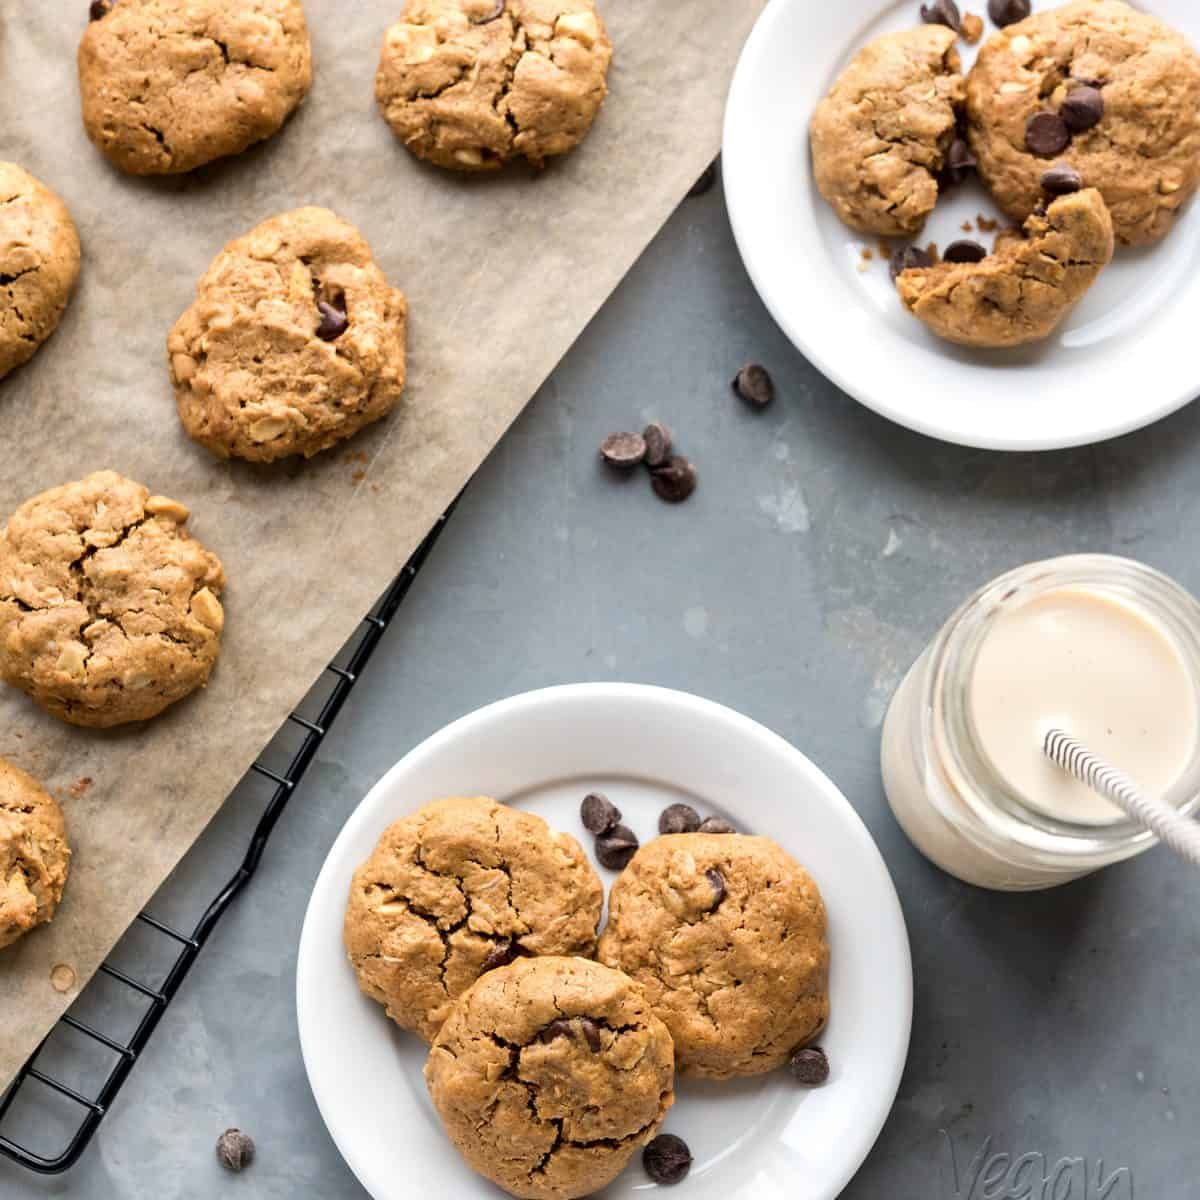 These Peanut Butter Oatmeal Cookies are easy-to-make, fun to customize, and always a crowd pleaser! From the book, But My Family Would Never Eat Vegan! #vegan #soyfree #eggfree